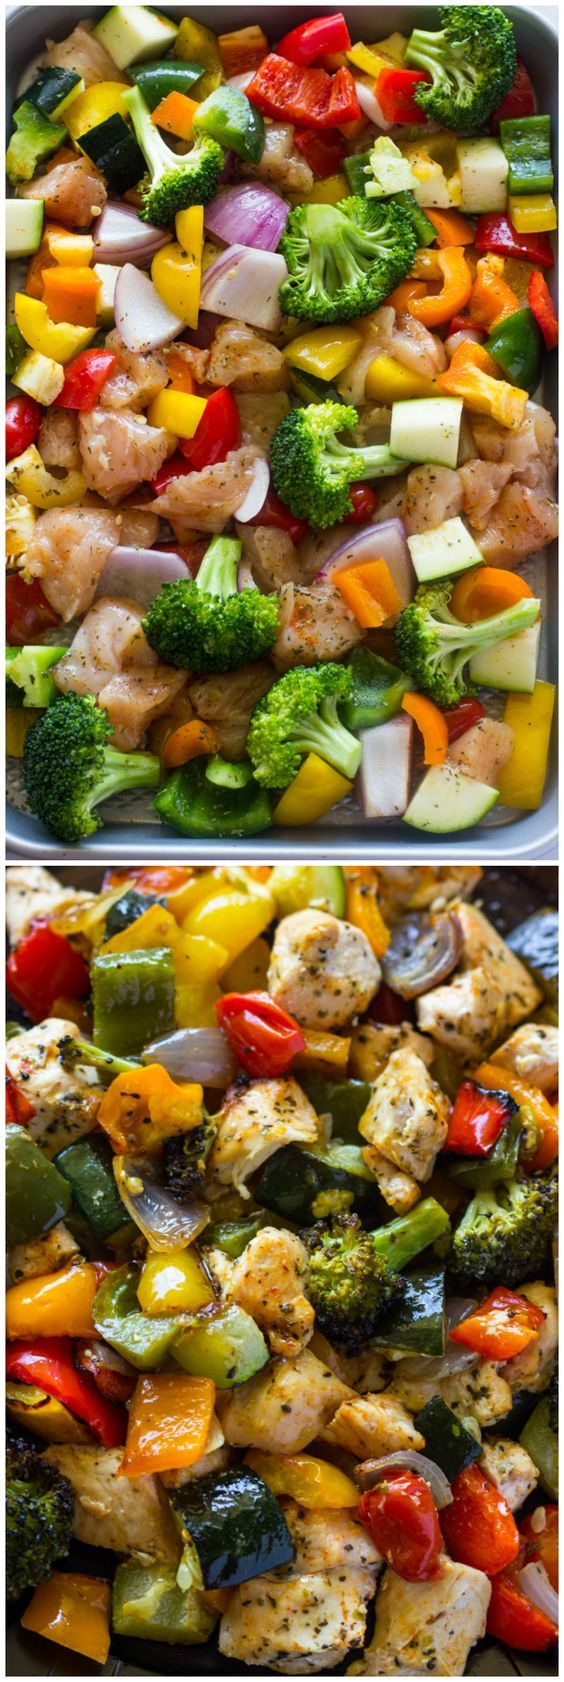 15 Minute Healthy Roasted Chicken and Veggies (Video) | Gimme Delicious #recipe